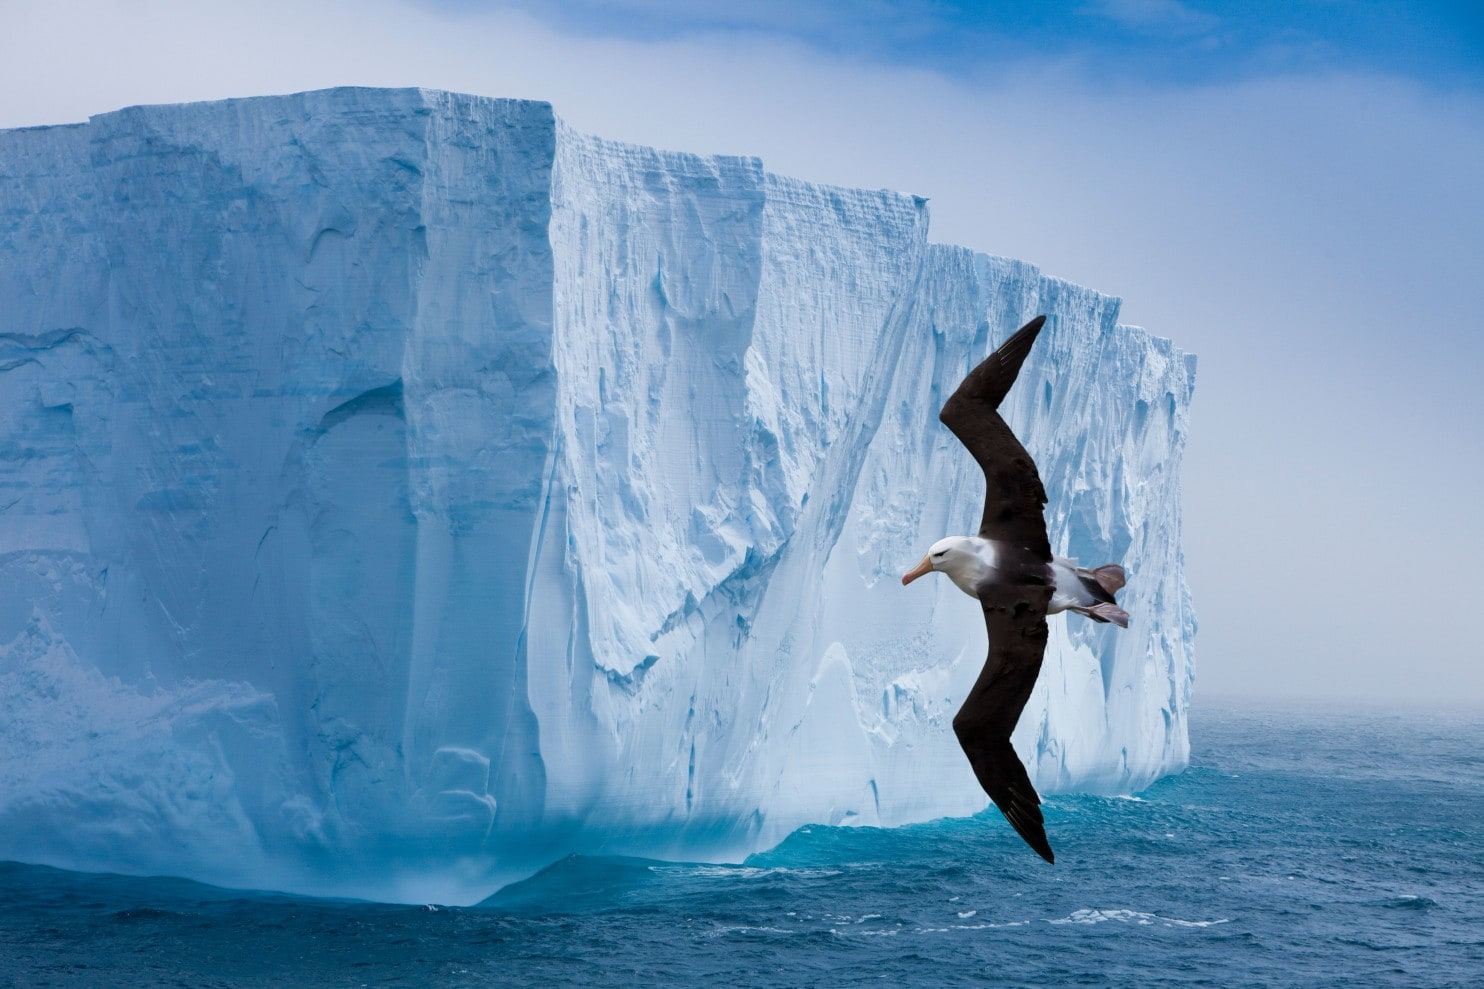 A black-browed albatross zips along the cliff-like edge of an iceberg. Whether at 4 a.m. or 9 p.m., there is always something to ogle in Antarctica. (Jim Zuckerman/Alamy Stock Photo)